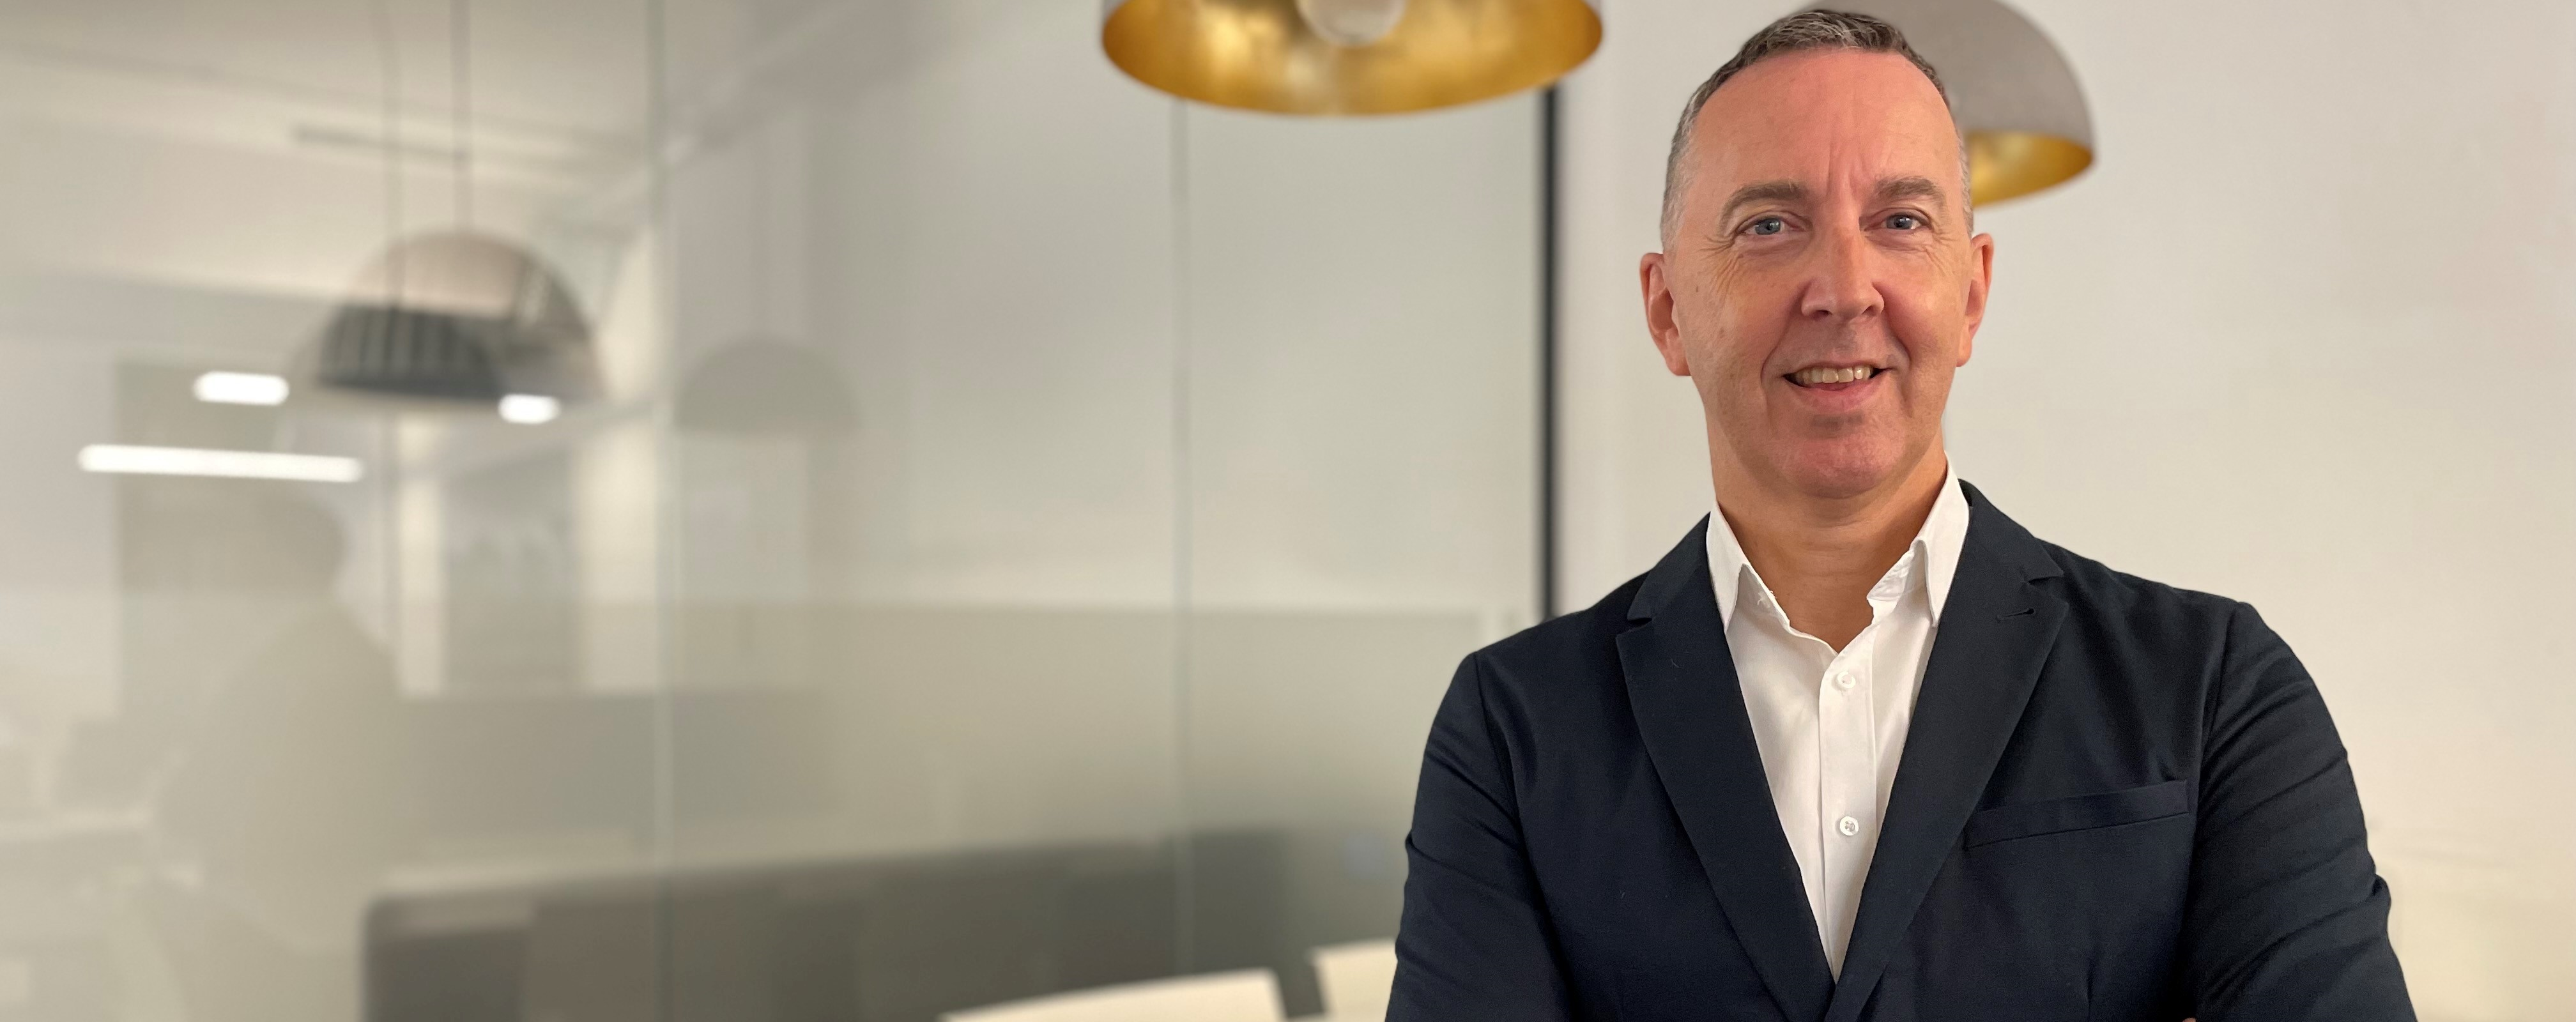 Interview with Achim Tyler, Vice President of Global Sales